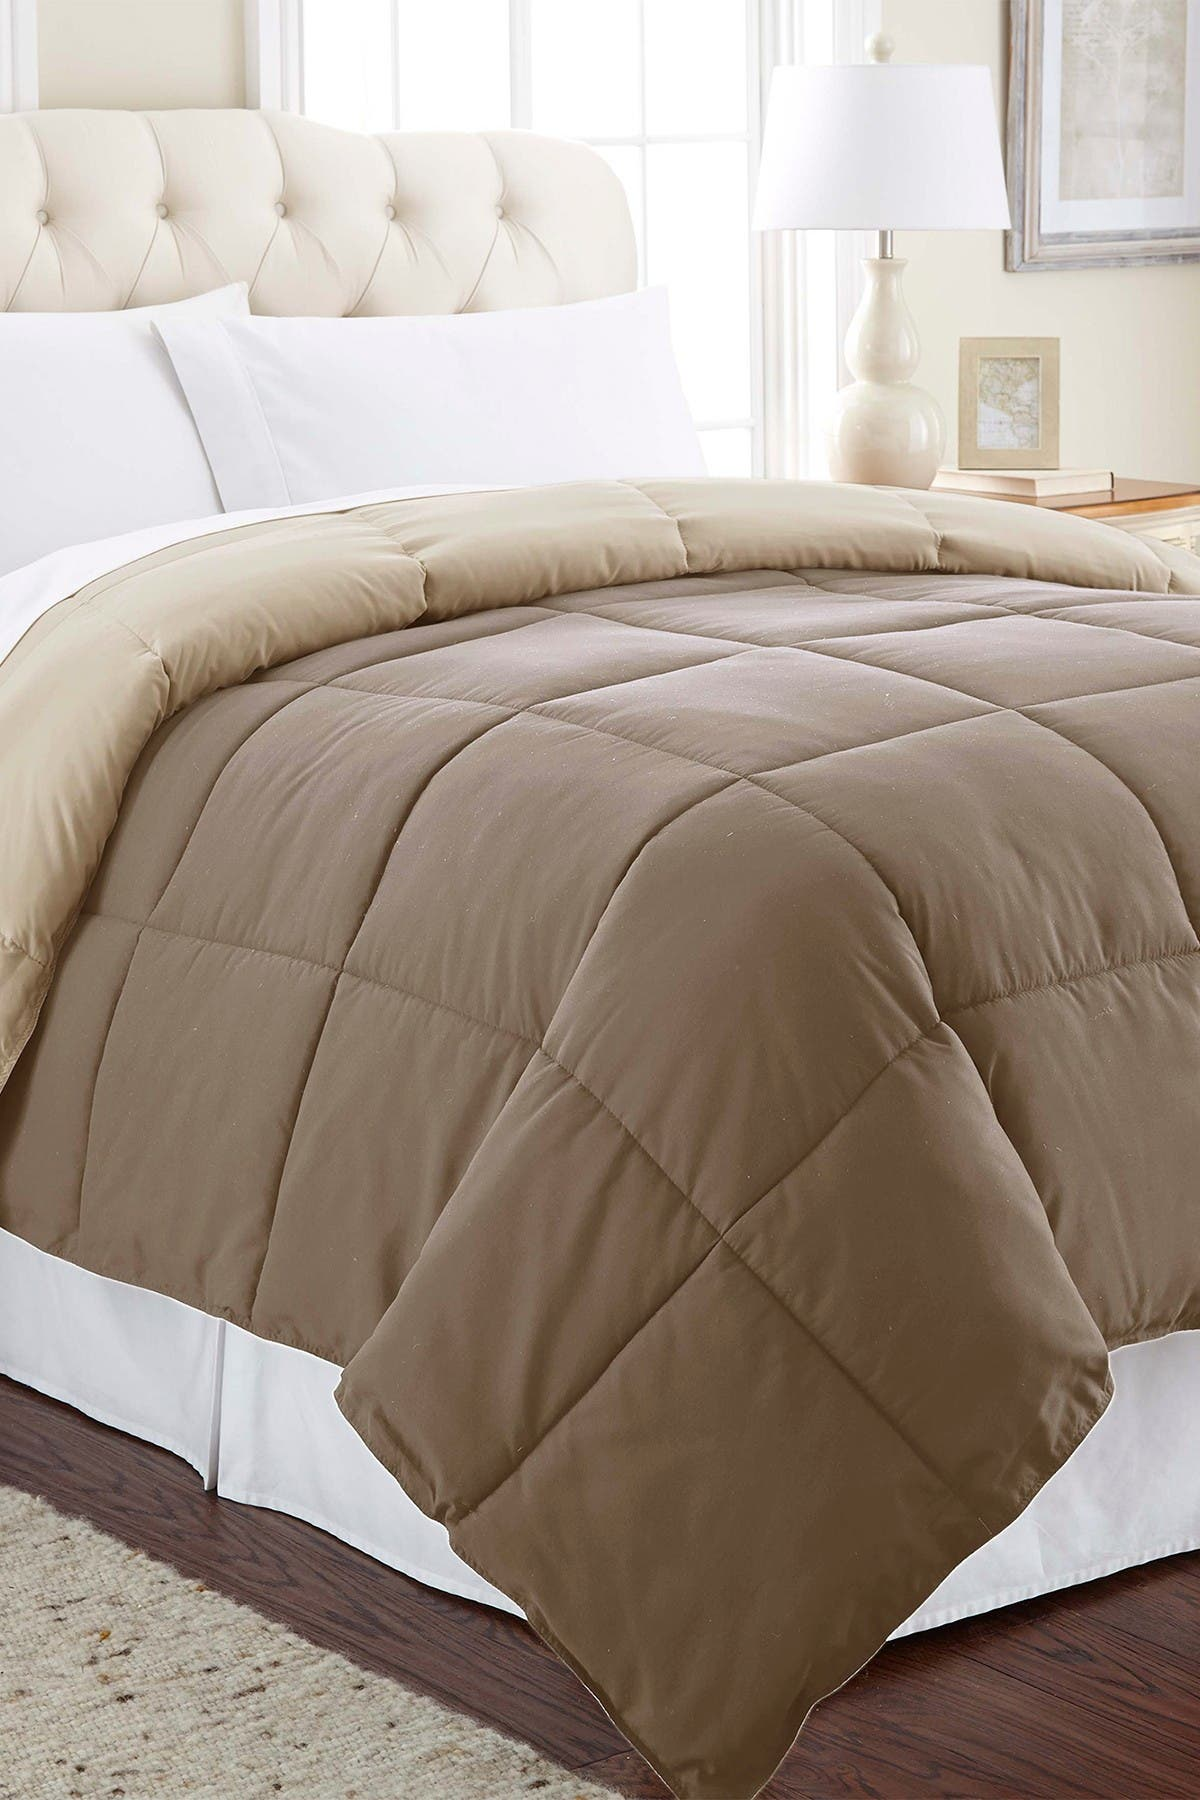 Image of Modern Threads Down Alternative Reversible Twin Comforter - Stone/Champagne